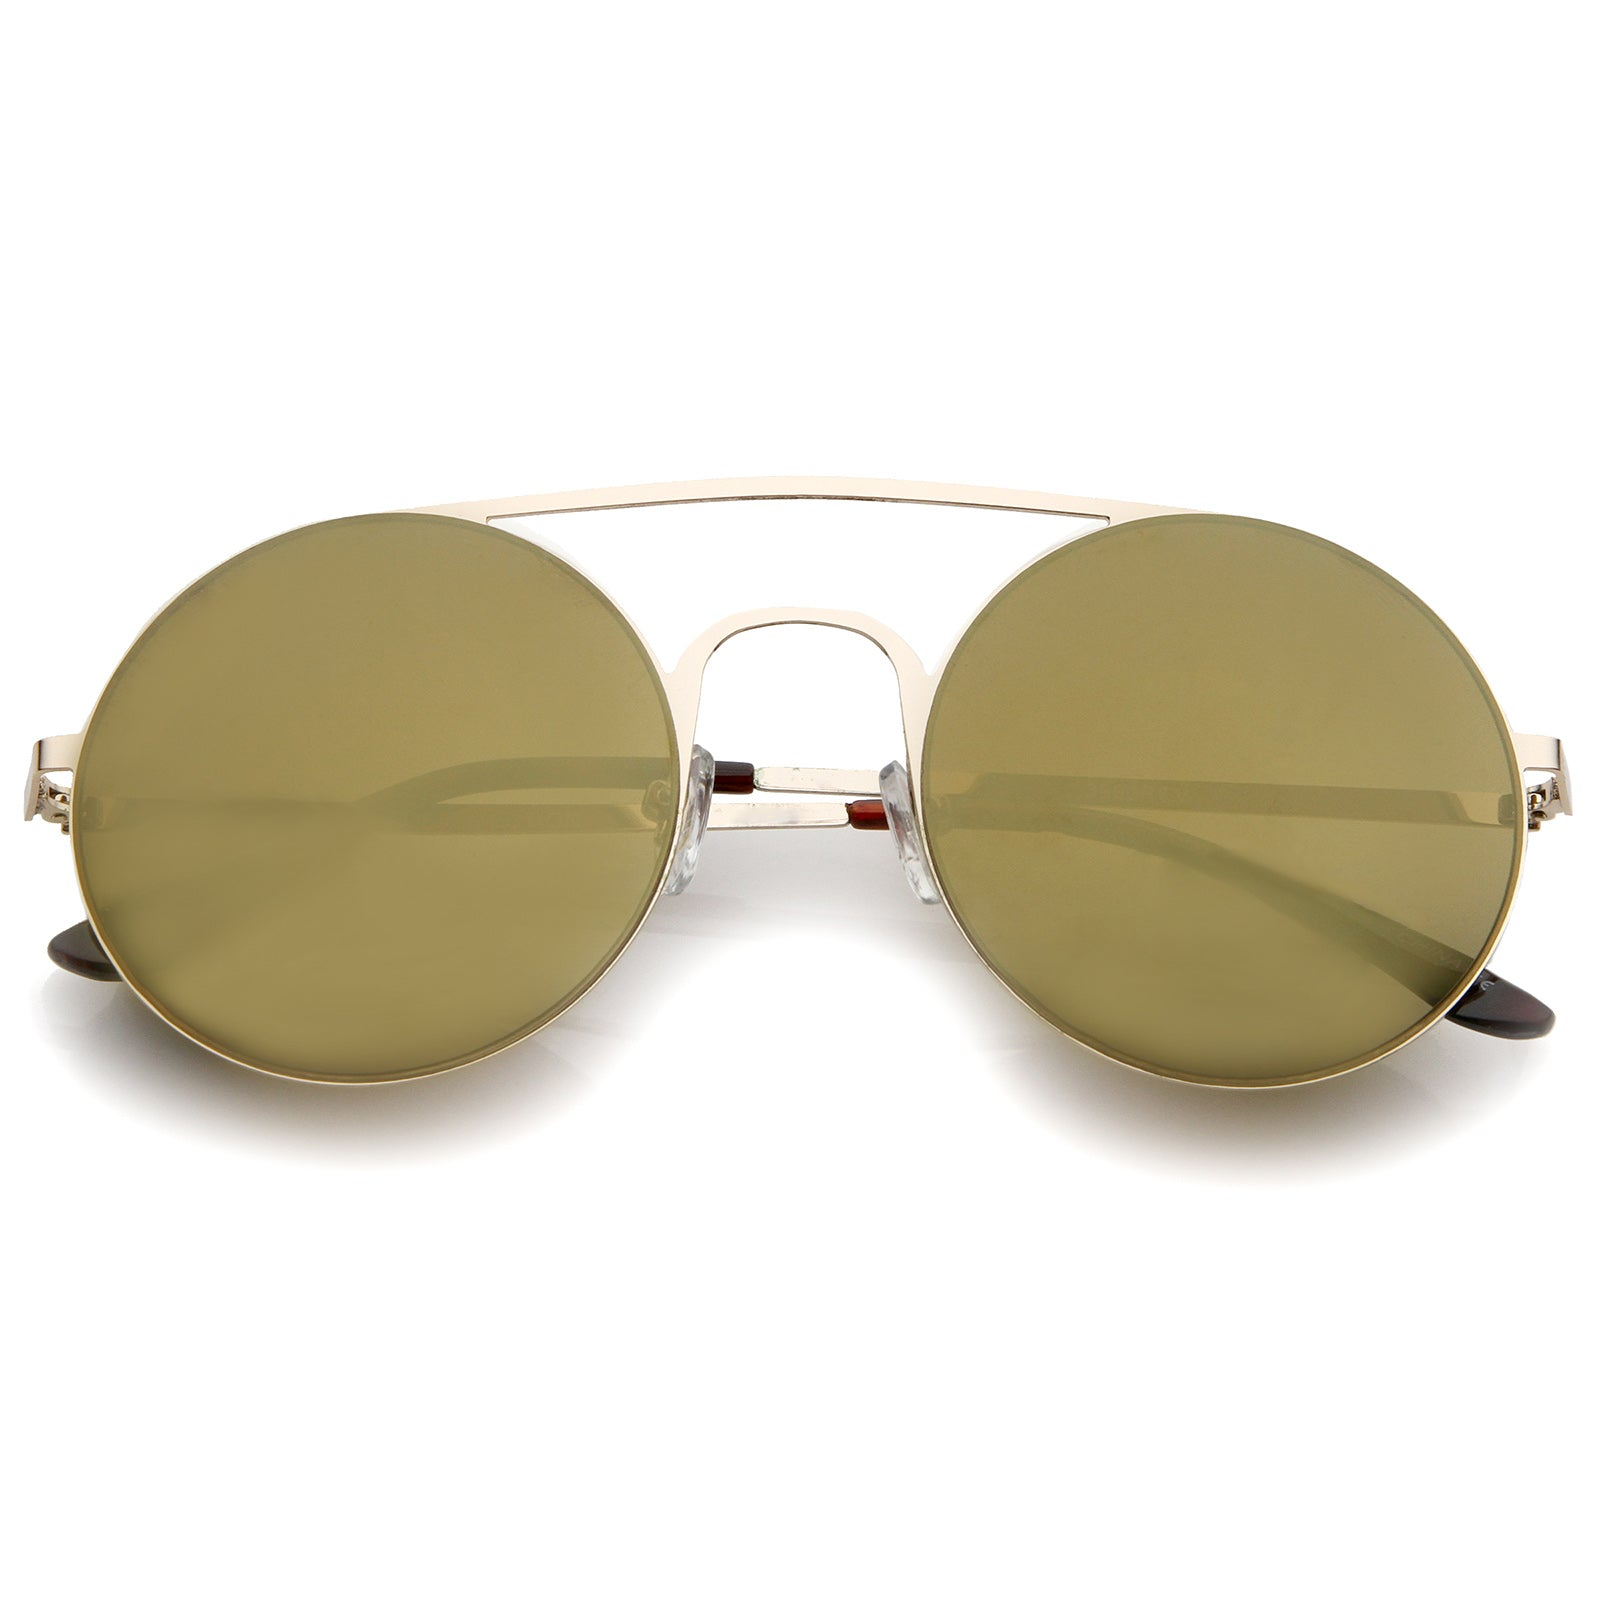 Modern Slim Double Nose Bridge Colored Mirror Flat Lens Round Sunglasses 53mm - sunglass.la - 8